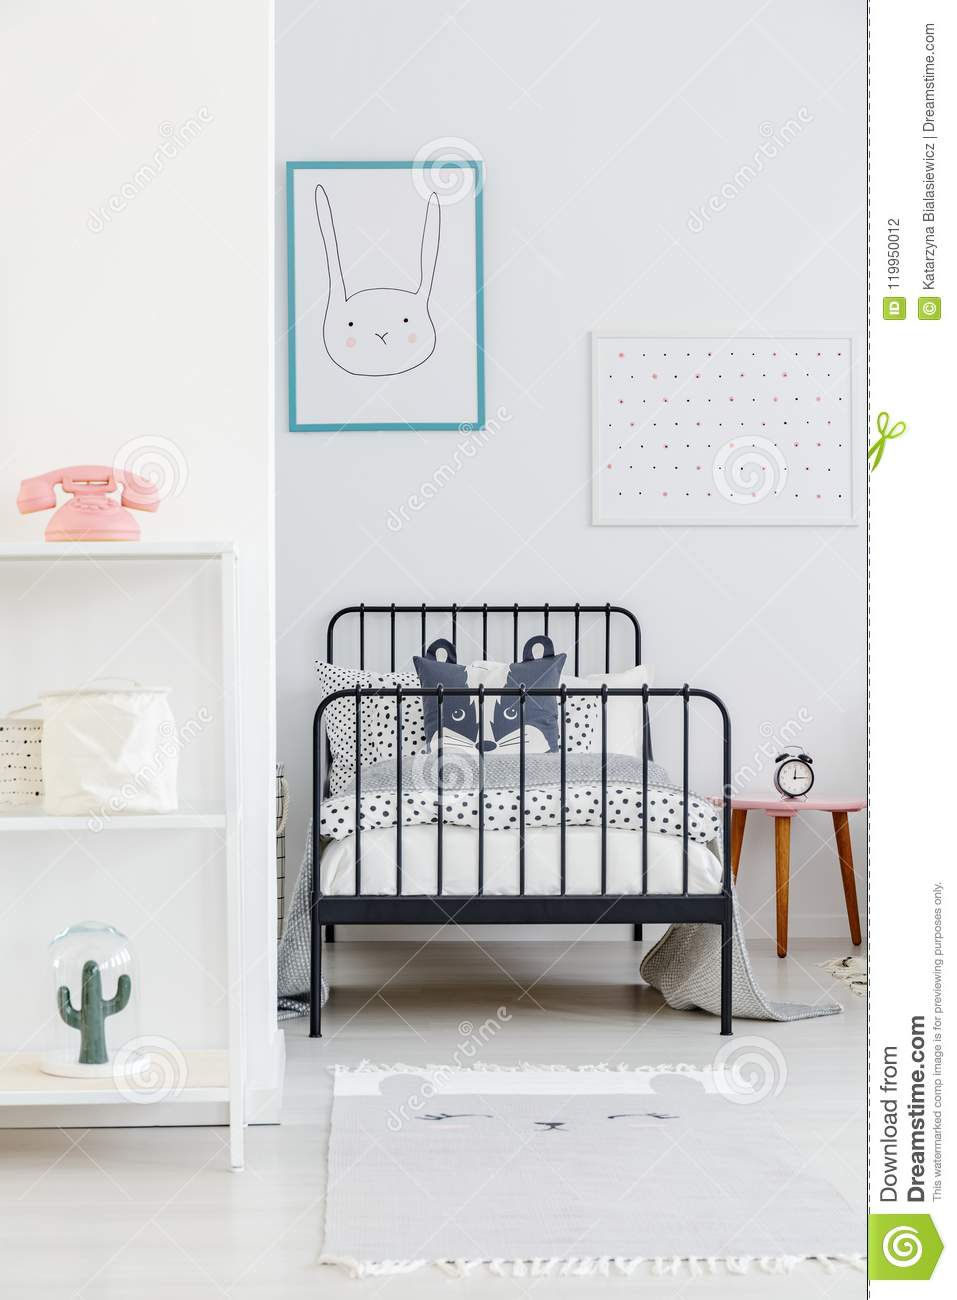 Child S Bed With Black Metal Frame In A Small Simple Bedroom In Stock Photo Image Of Child Frame 119950012